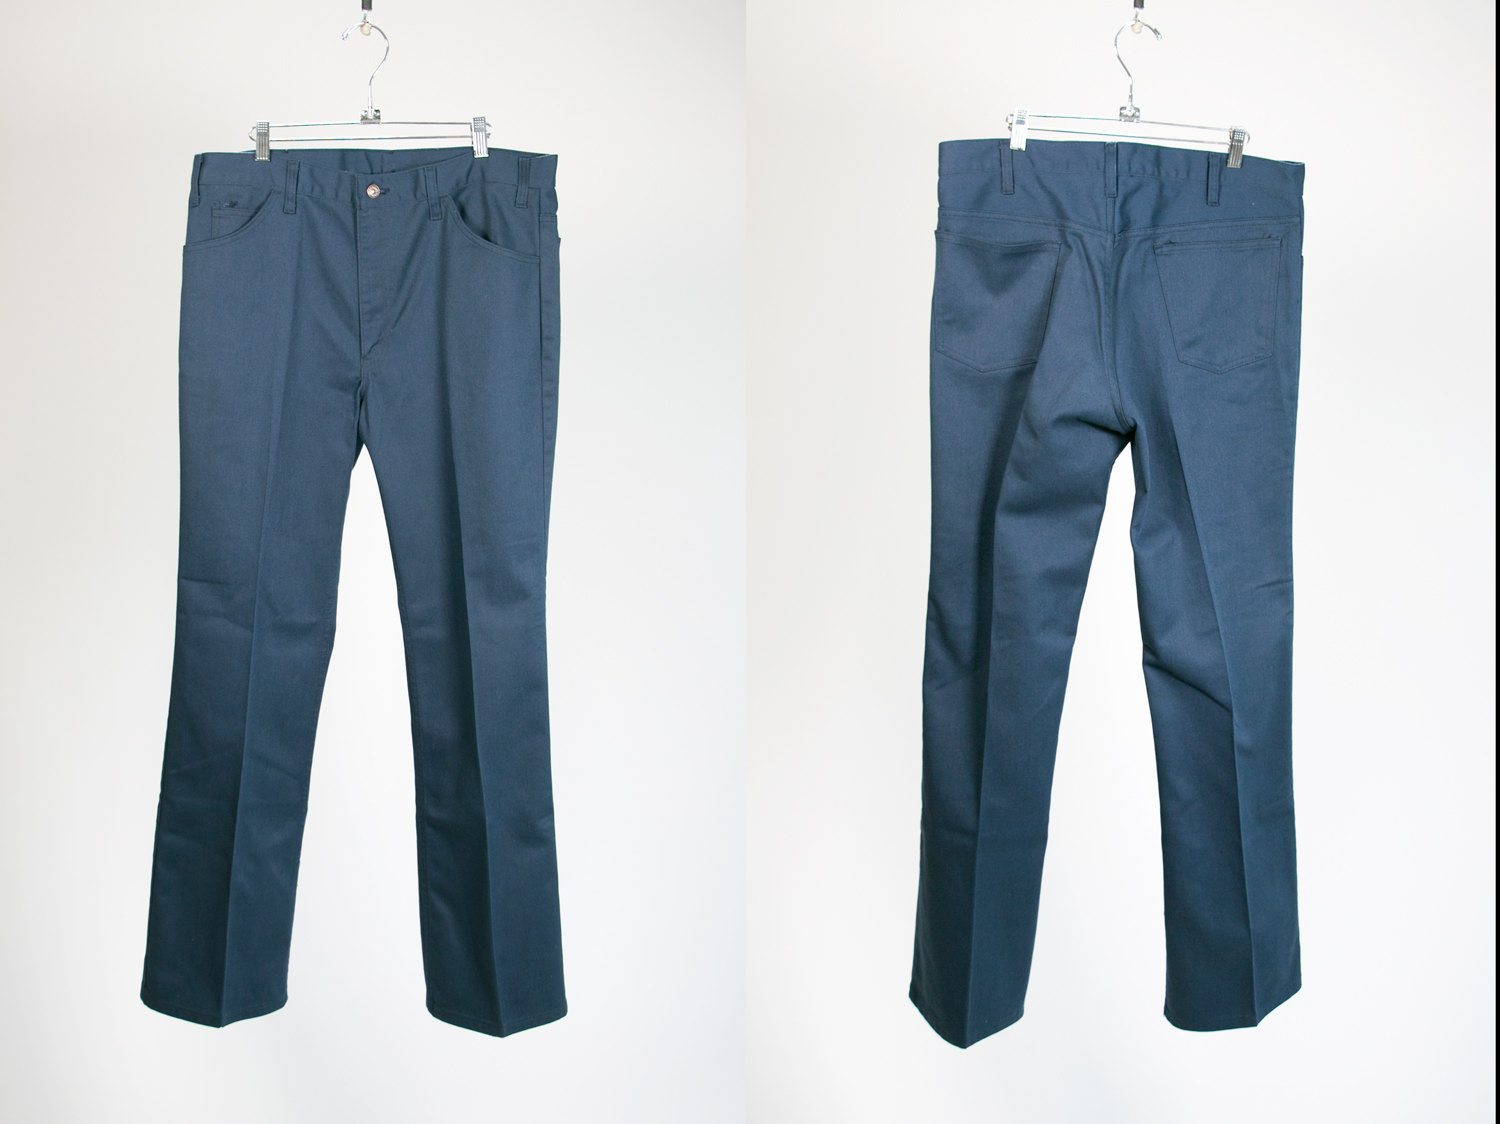 Vintage 1970's Blue JCPenney Work Pants Men's 38x34 50/50 Cotton/Polyester - Retro, Menswear, Hipster, Rocker, Sta-Prest, Wrancher